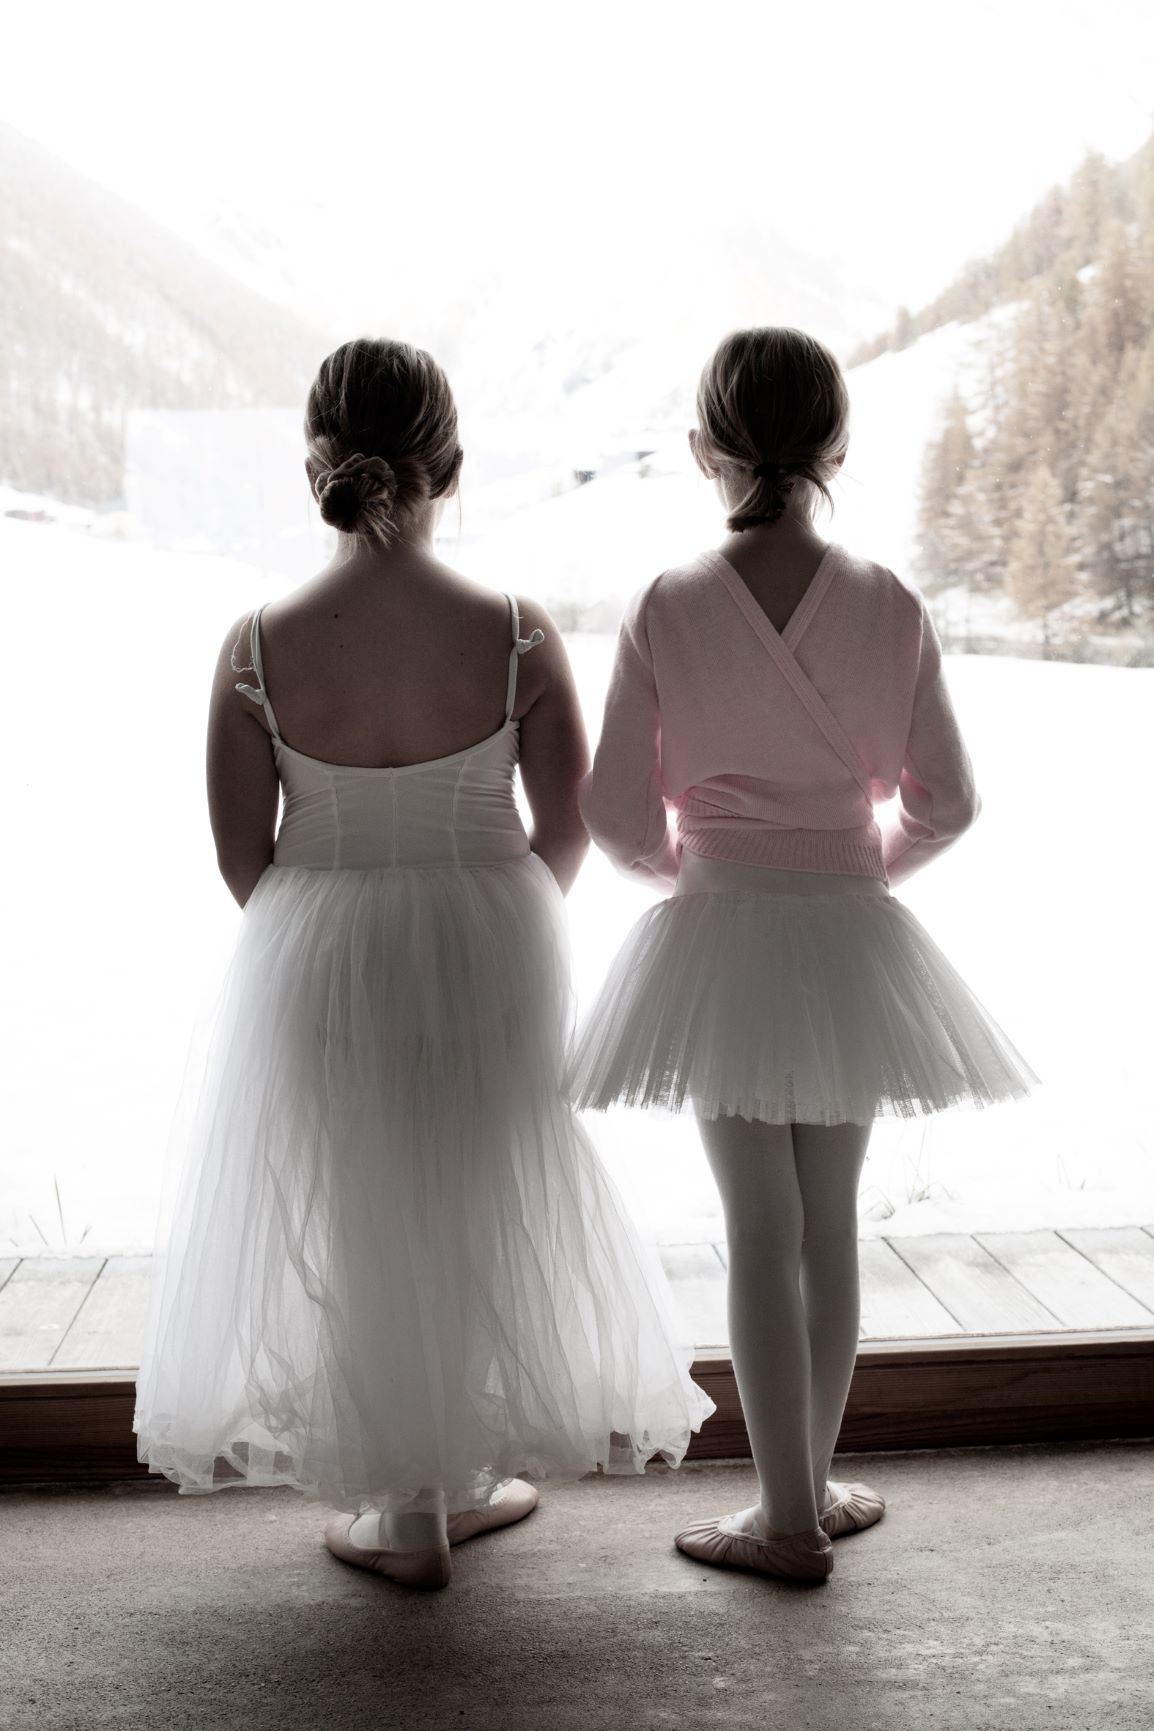 Ballerinas from behind 1 - Photo © Daniela Brugger